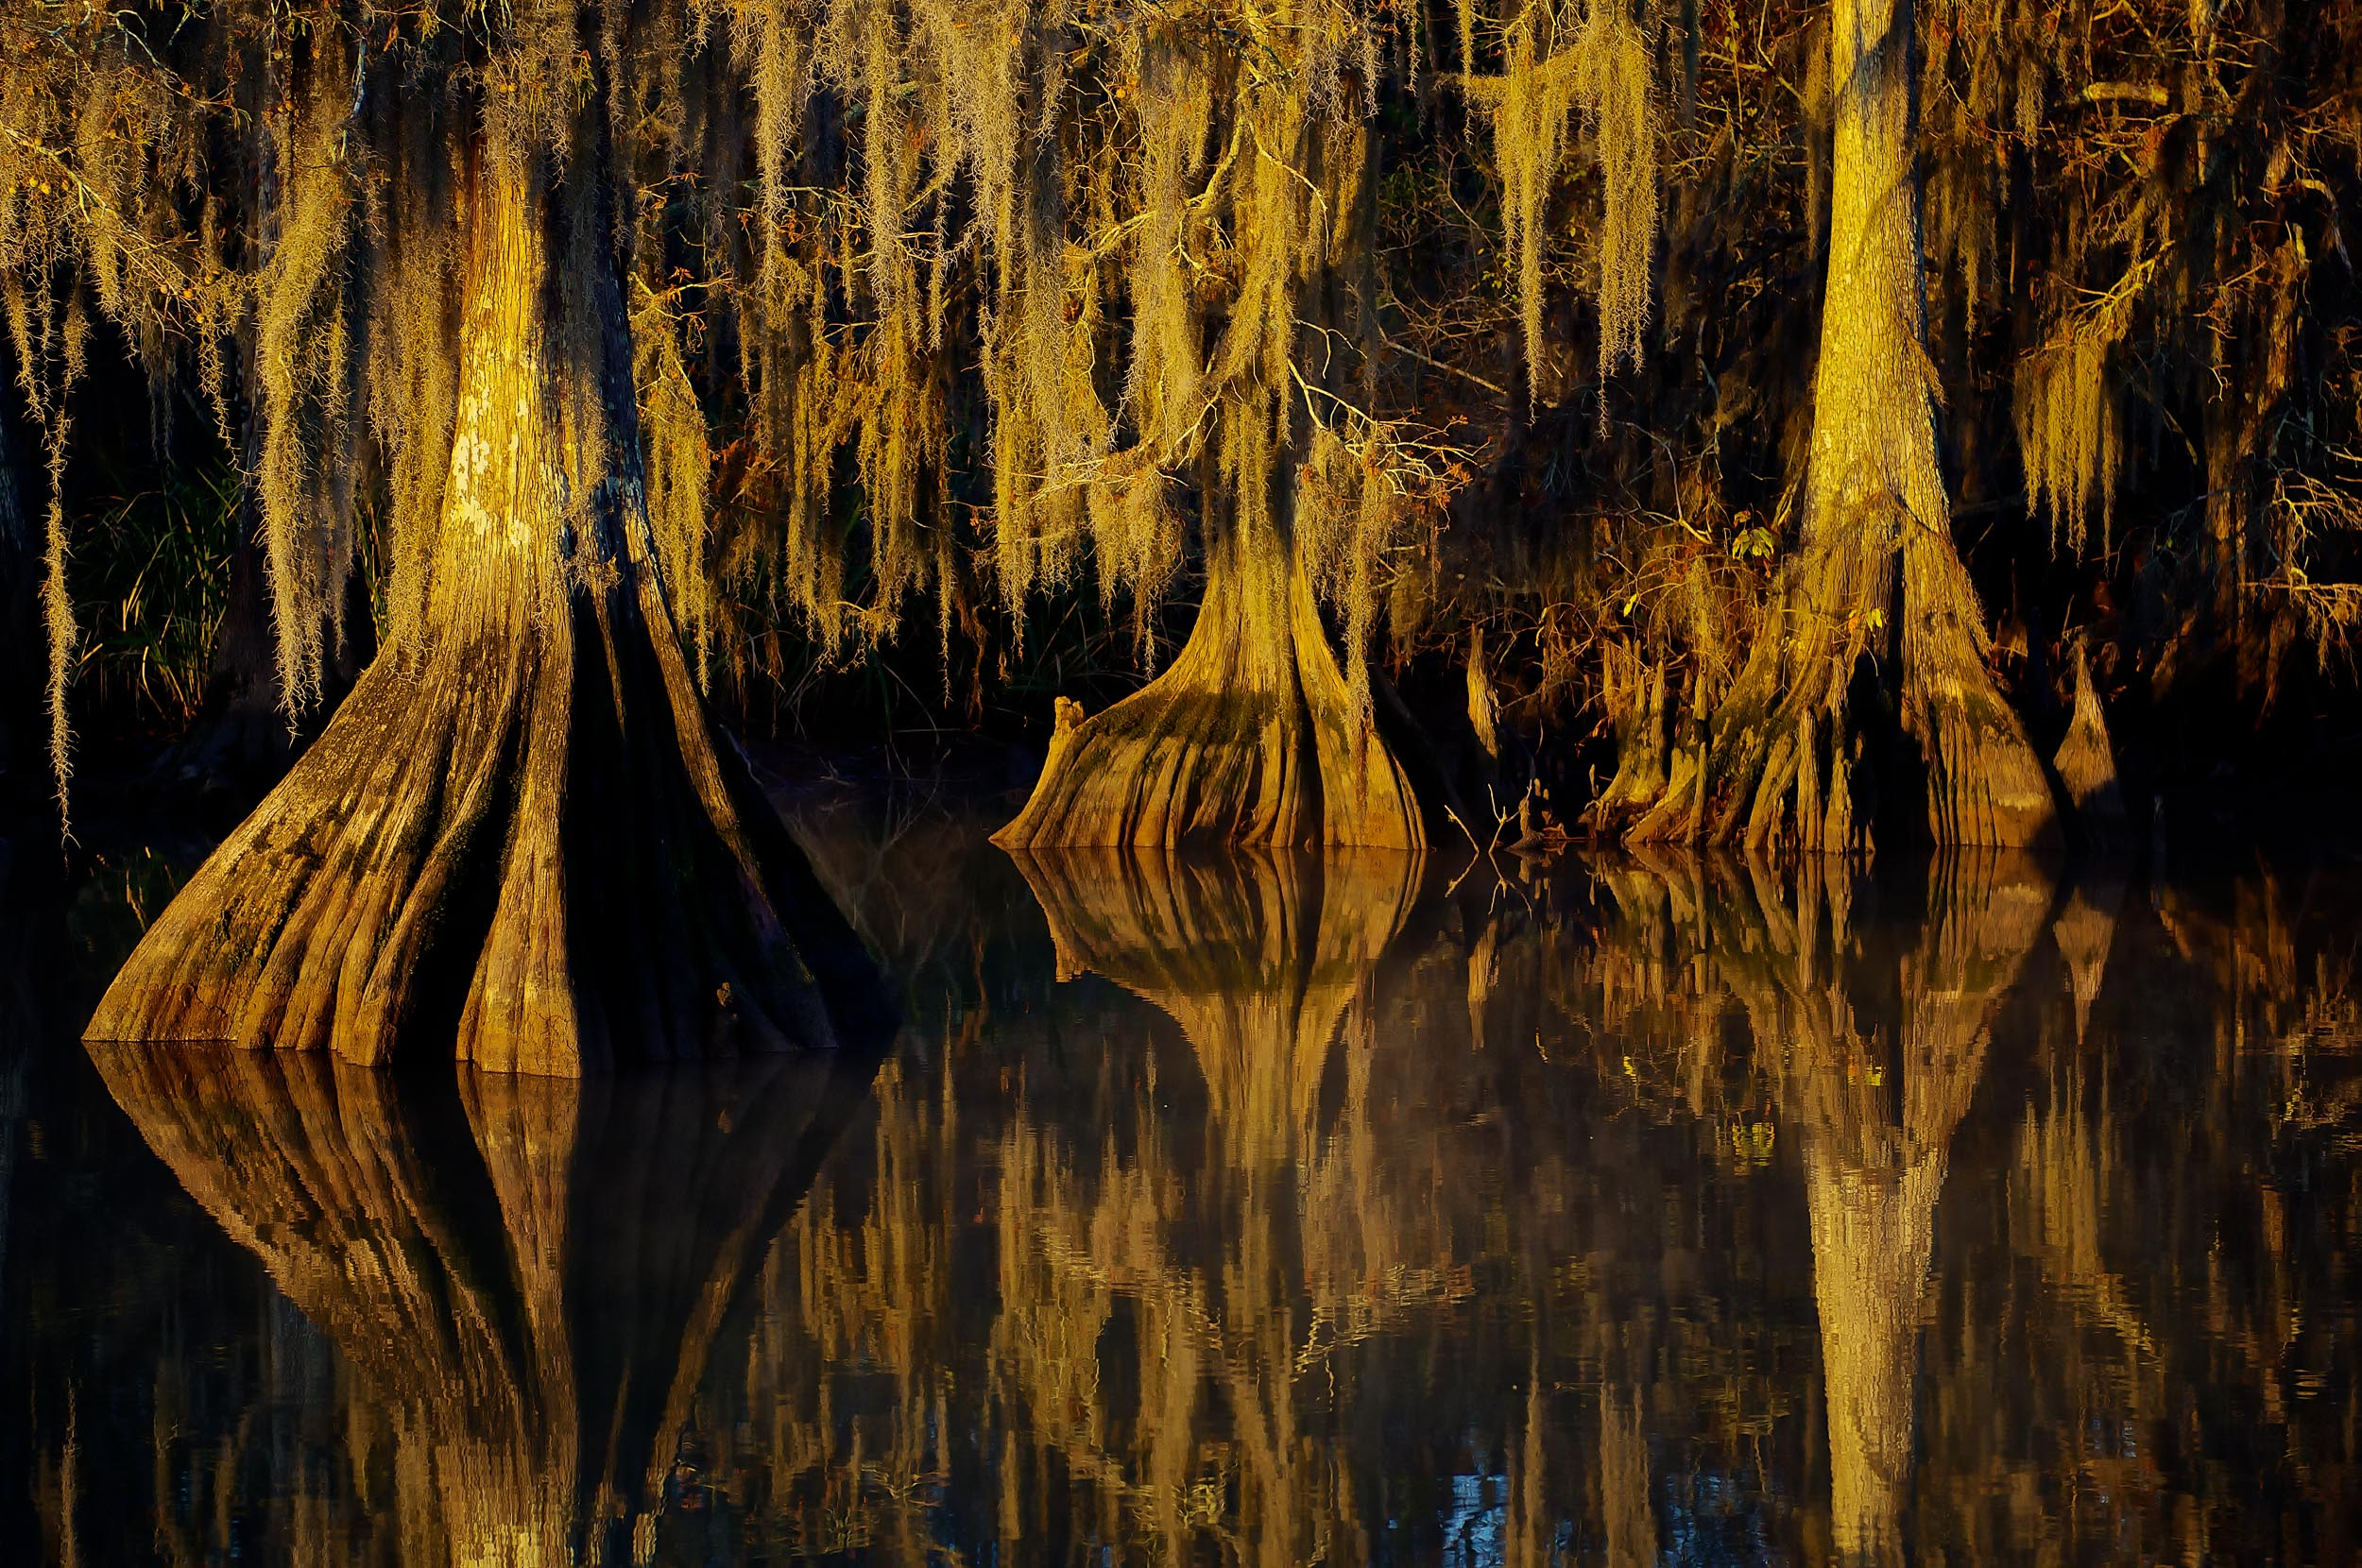 Cypress in the Swamp December 7th 2010